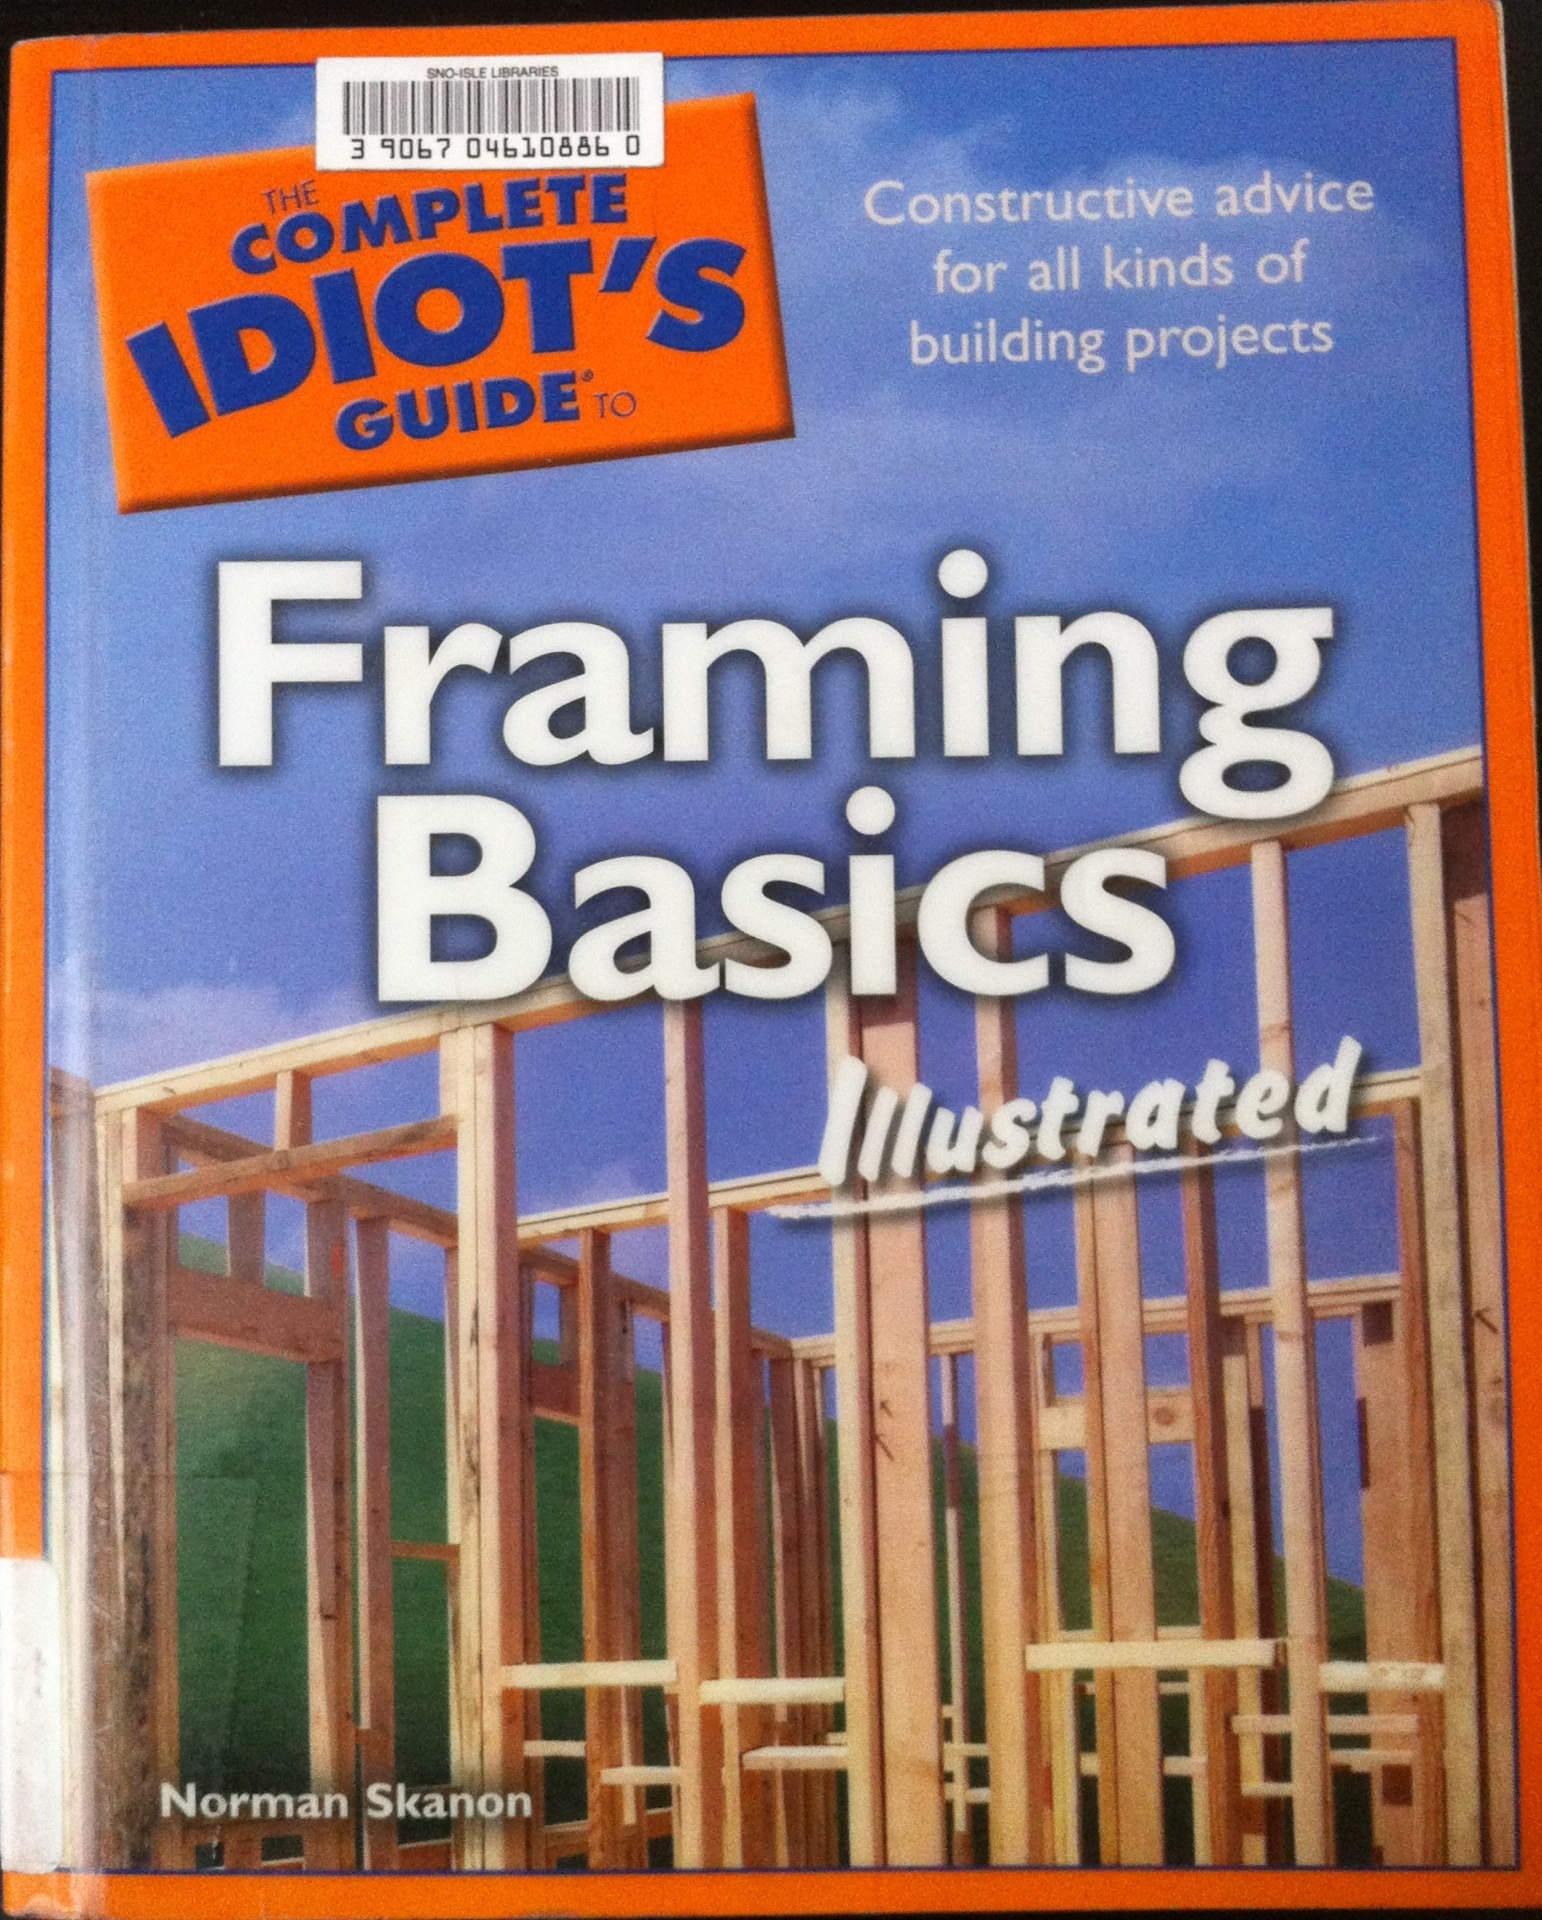 The Complete Idiot's Guide to Framing Basics Illustrated   Norman Skanon